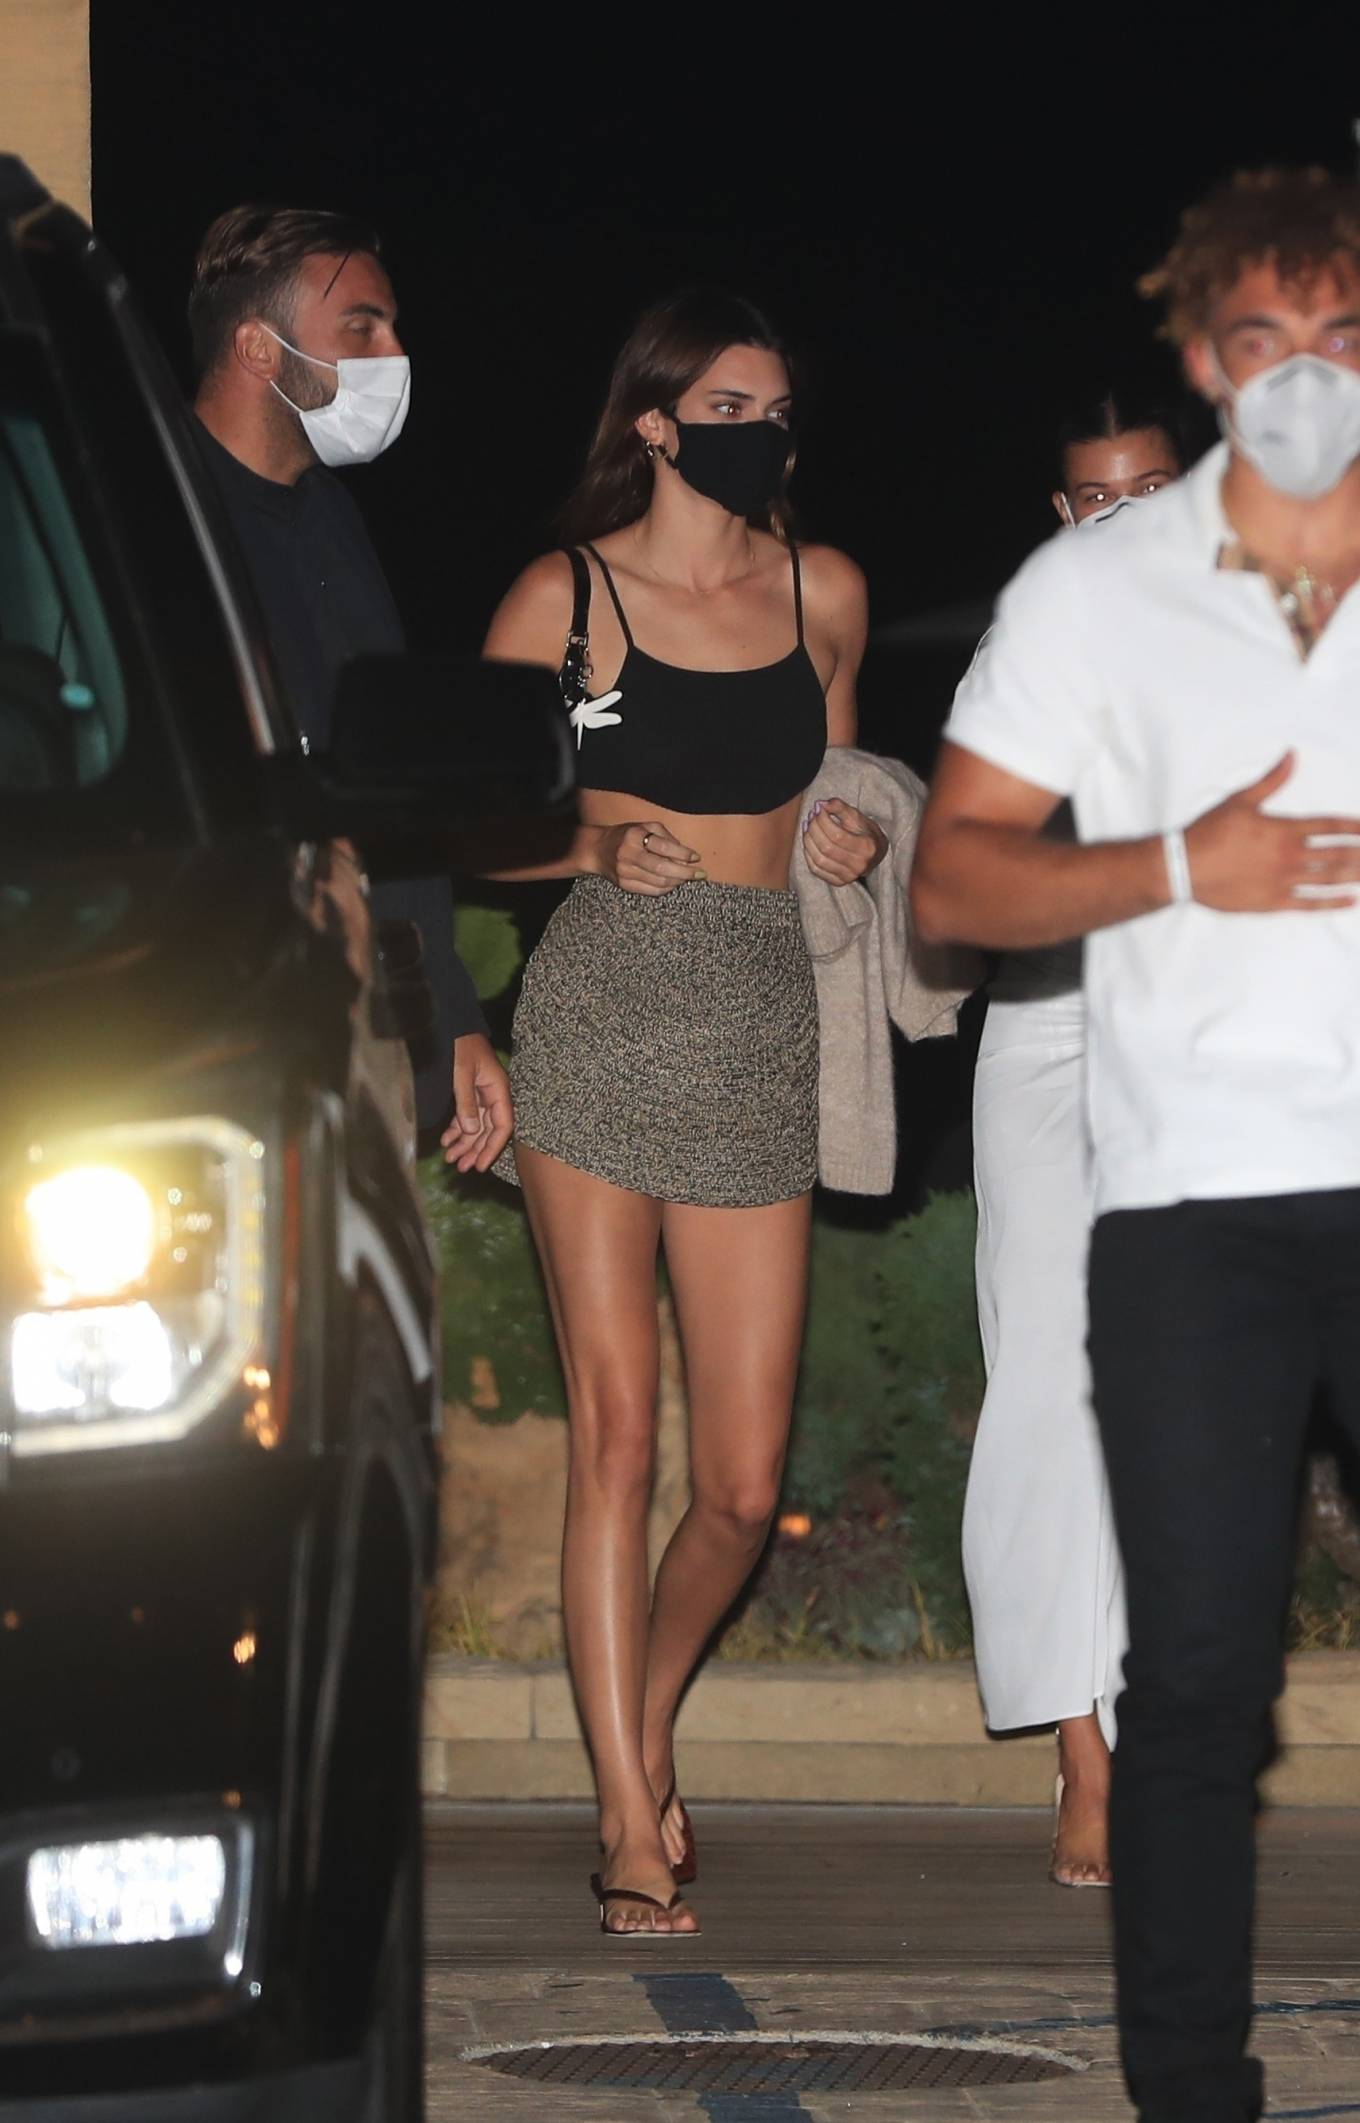 Kendall Jenner donning a Figure hugging Meshki black crop top with very thin spaghetti straps